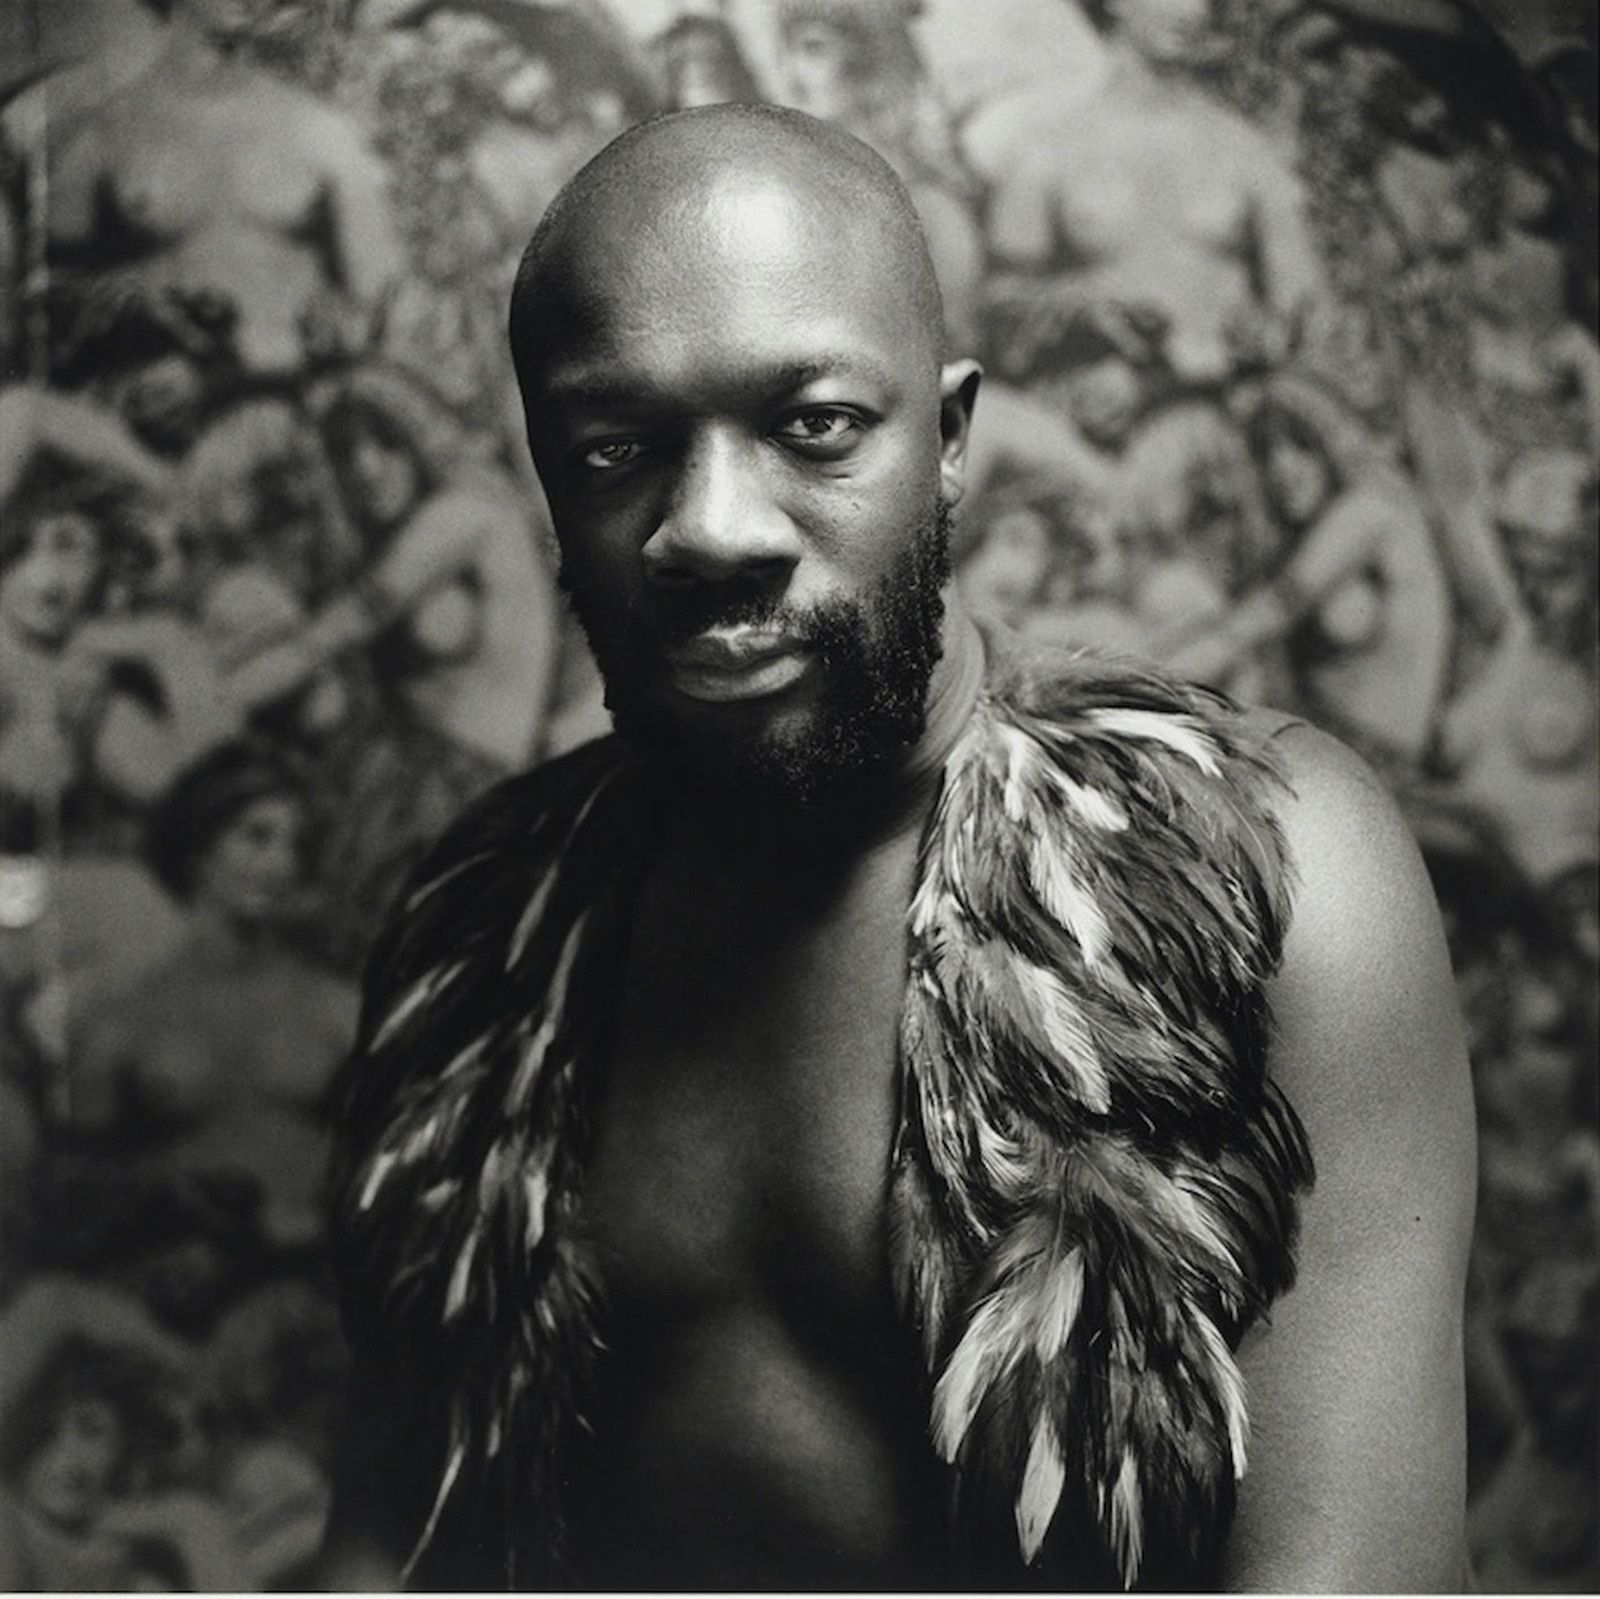 Peter Hujar: Isaac Hayes, 1971; gelatin silver print; 14 3/4 x 14 3/4 in.; Peter Hujar Collection, the Morgan Library & Museum, New York, purchased on the Charina Endowment Fund. © 1969 Peter Hujar Archive LLC, courtesy of Pace/MacGill Gallery, New York, and Fraenkel Gallery, San Francisco.